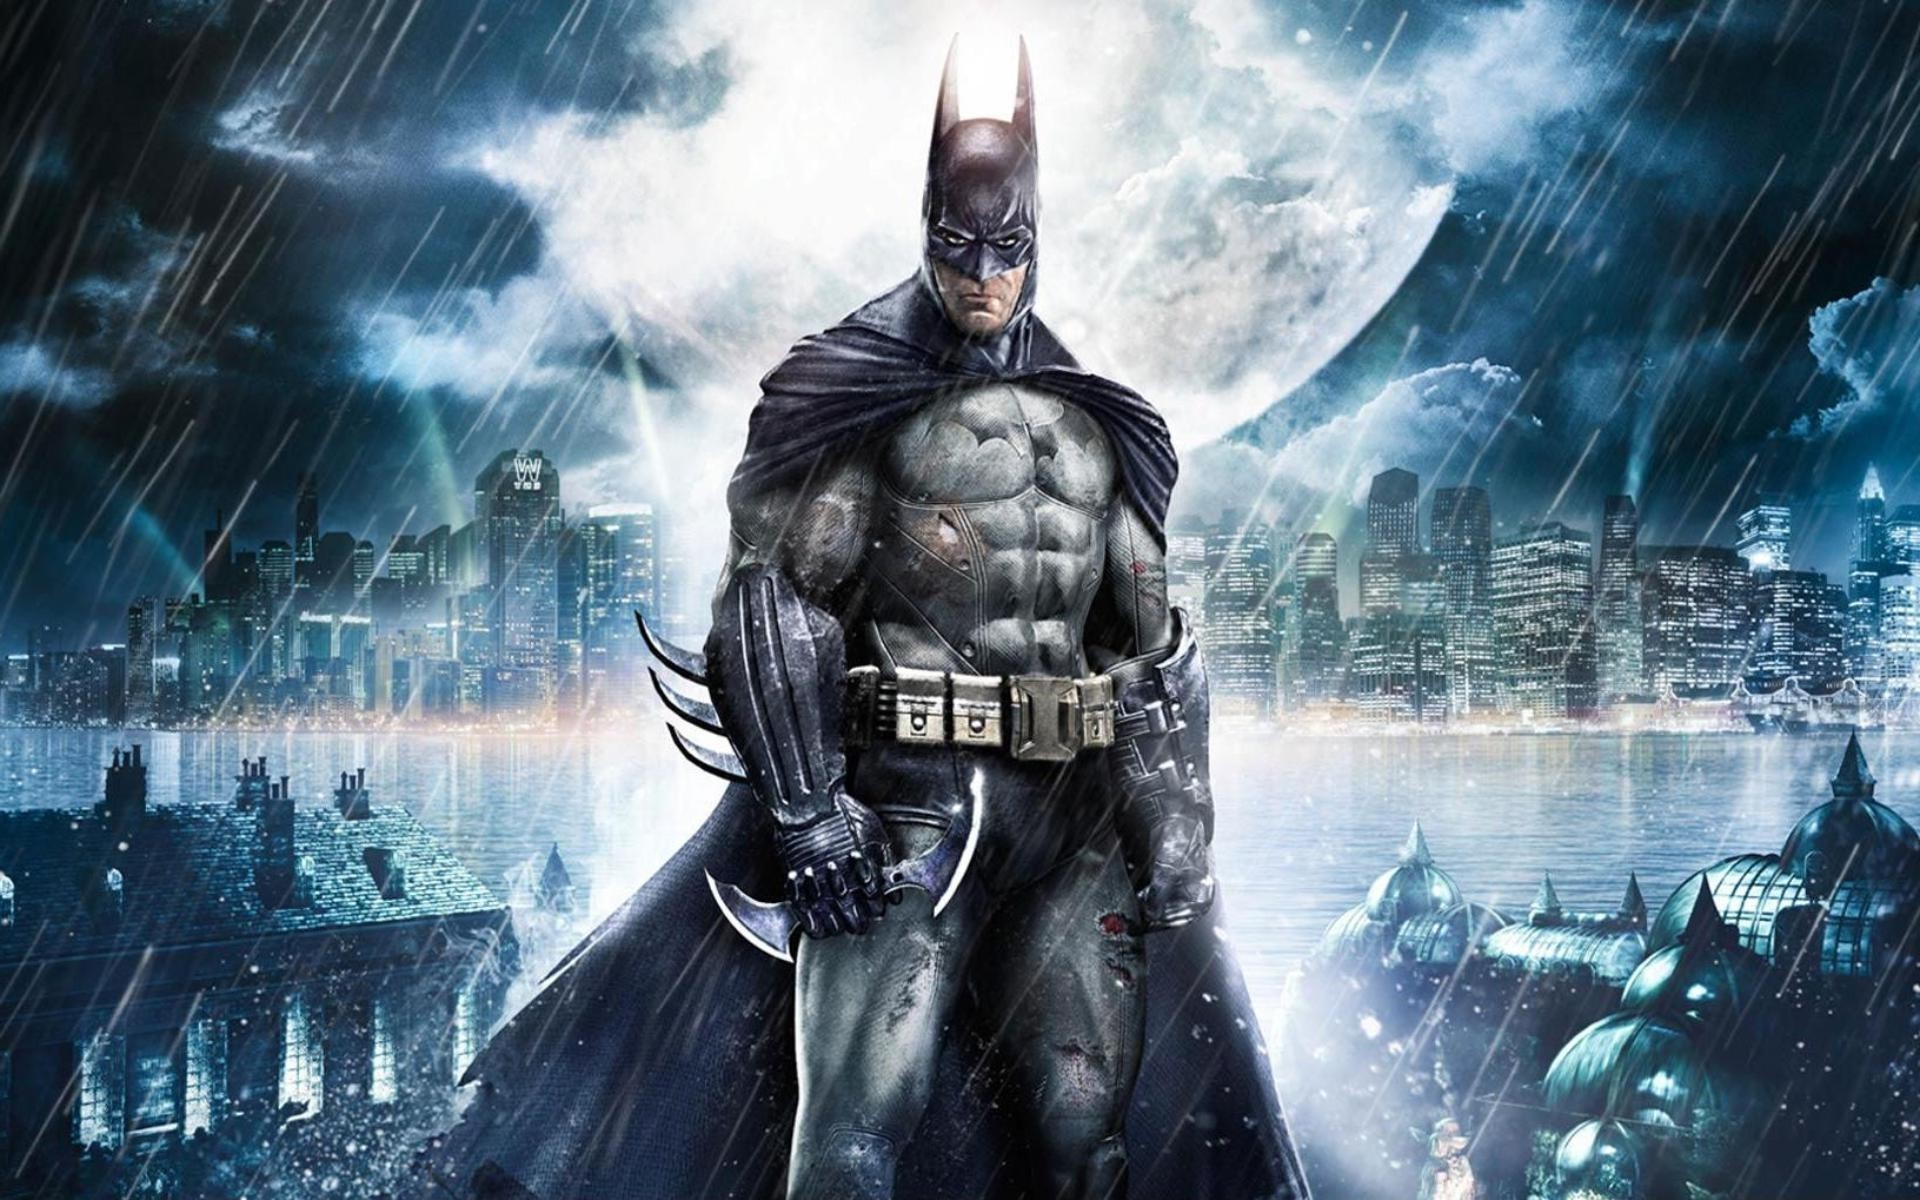 Kevin Conroy Confirms There Wont Be Another Batman Arkham Game